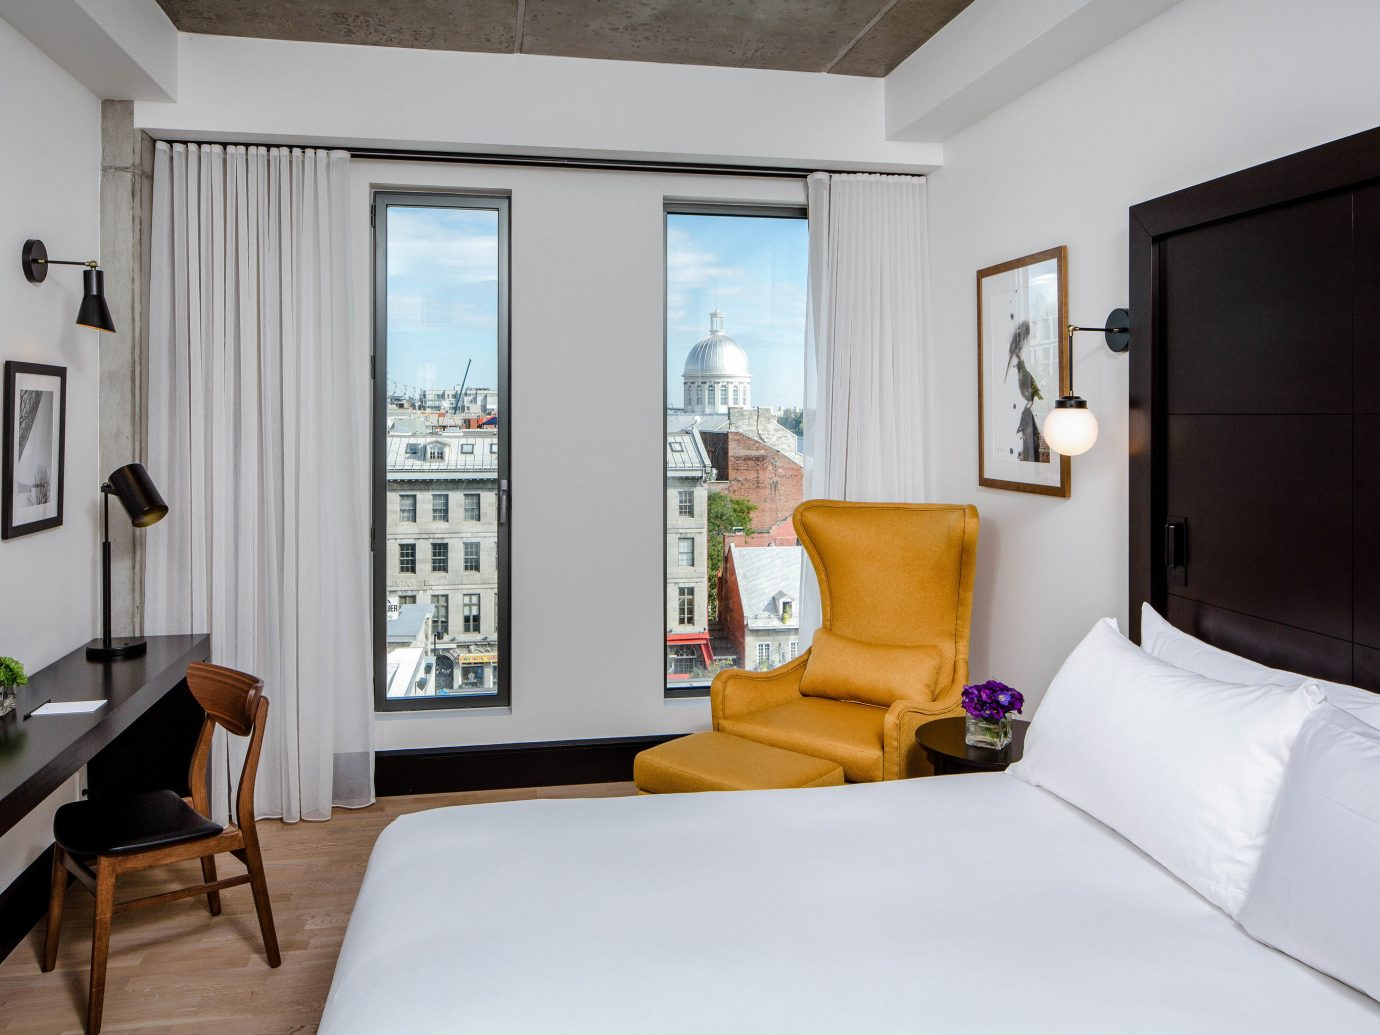 Boutique Hotels Chicago Hotels indoor wall room floor bed ceiling Suite Bedroom white interior design hotel window real estate furniture comfort interior designer several